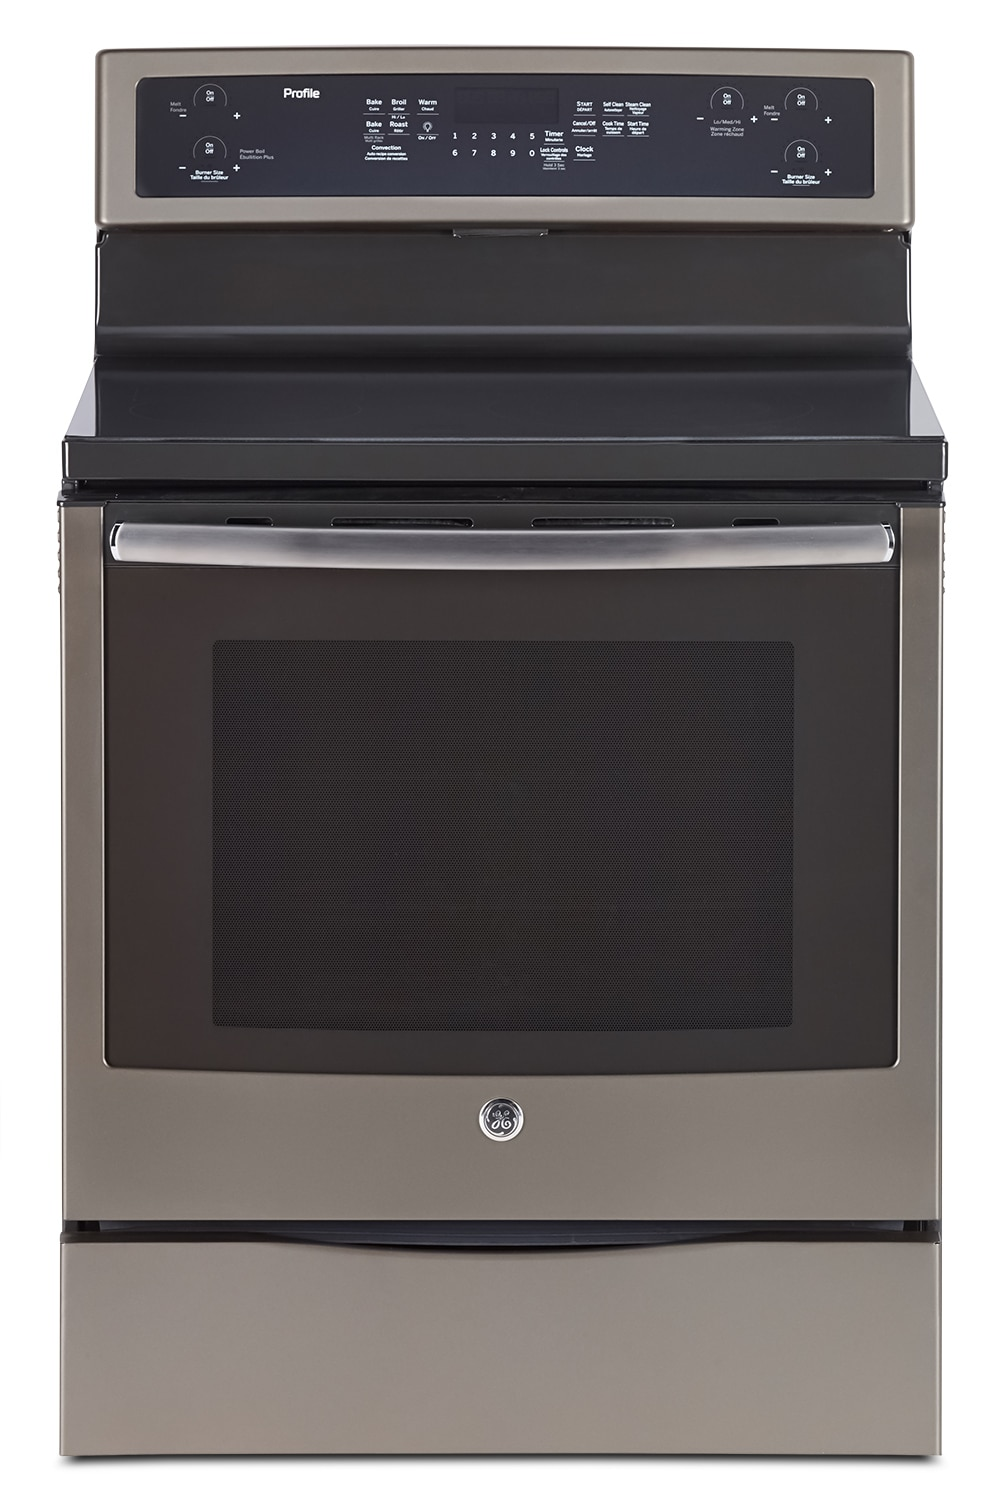 Cooking Products - GE 6.2 Cu. Ft. Freestanding Electric Range – PCB915EKES